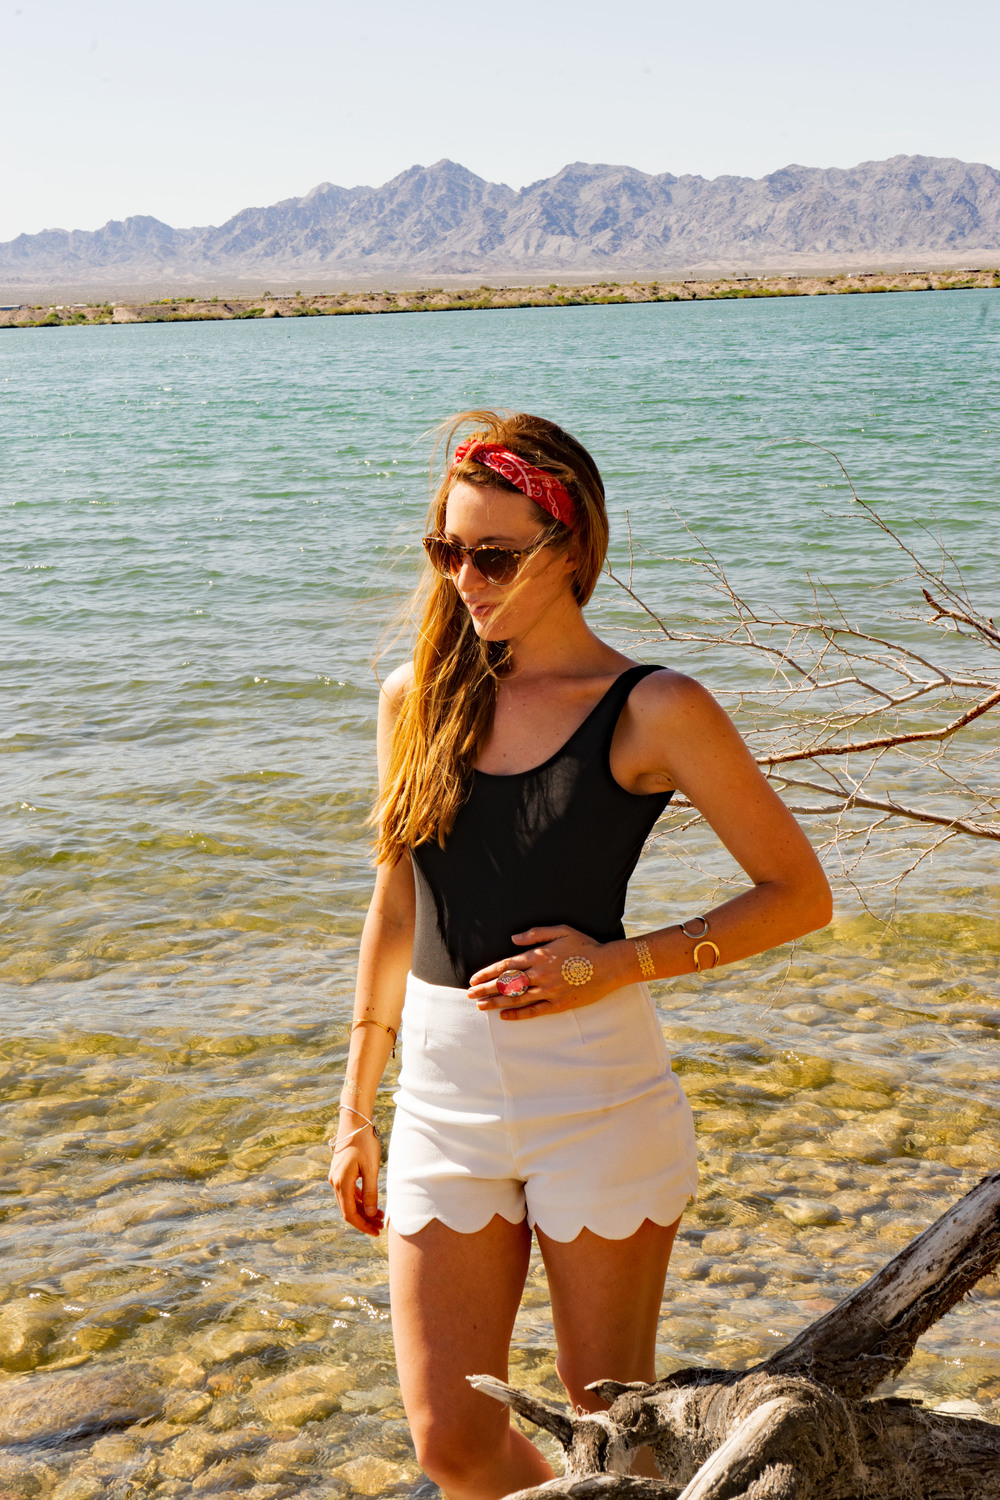 Spring Break Lake Havasu City Arizona Water Wanderer Taylor & Sage Kimono